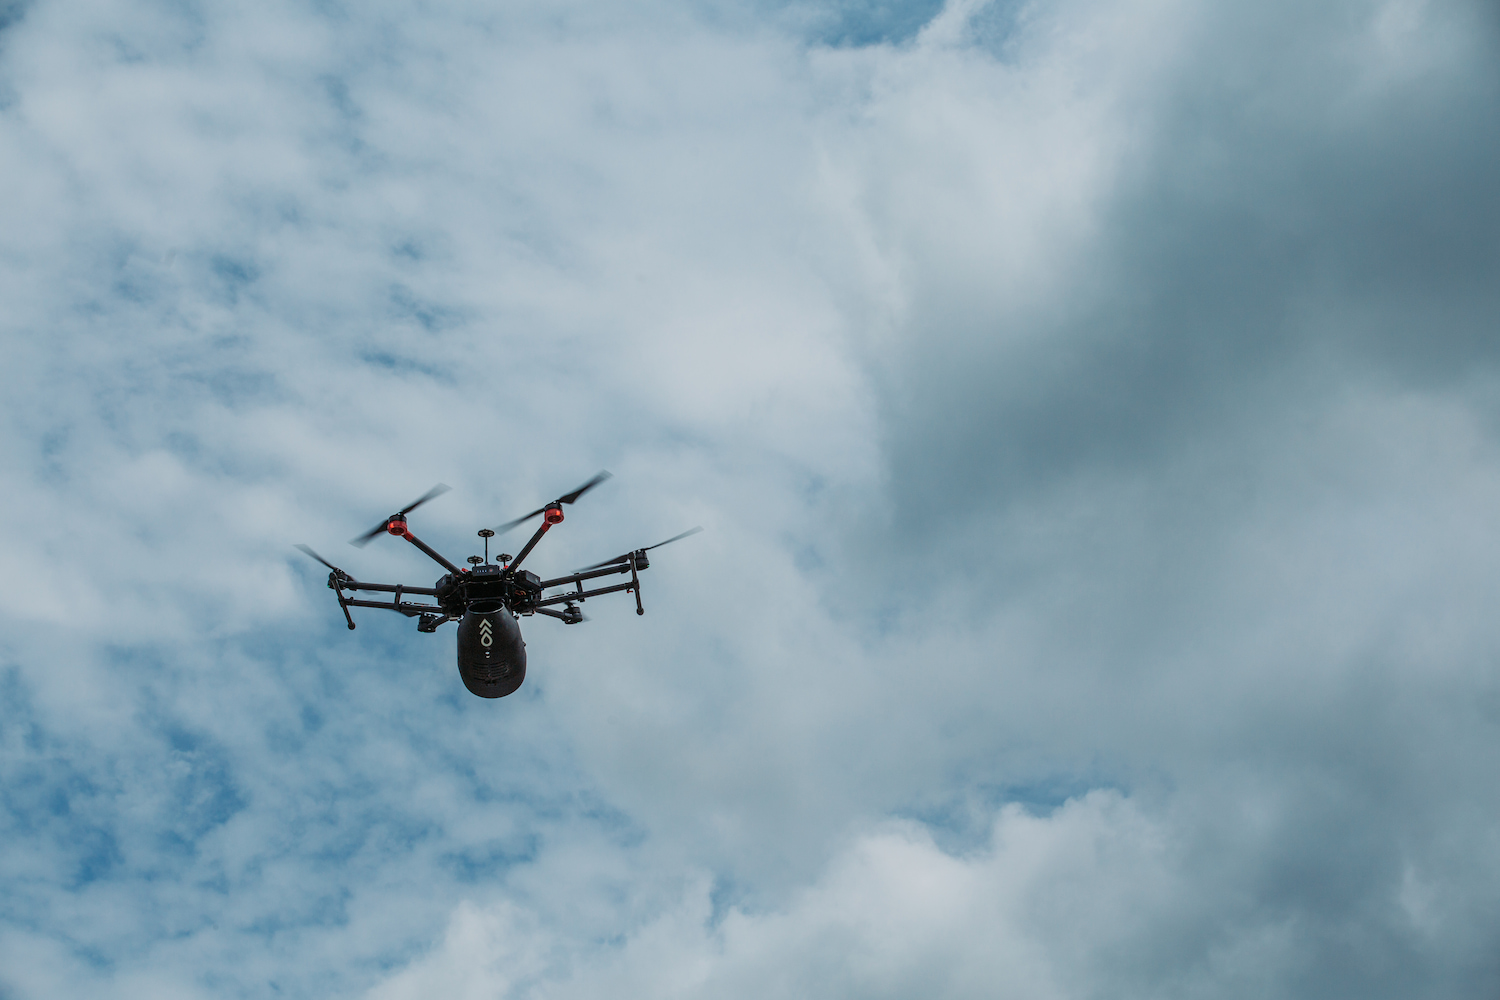 A Flash Forest drone in the air.